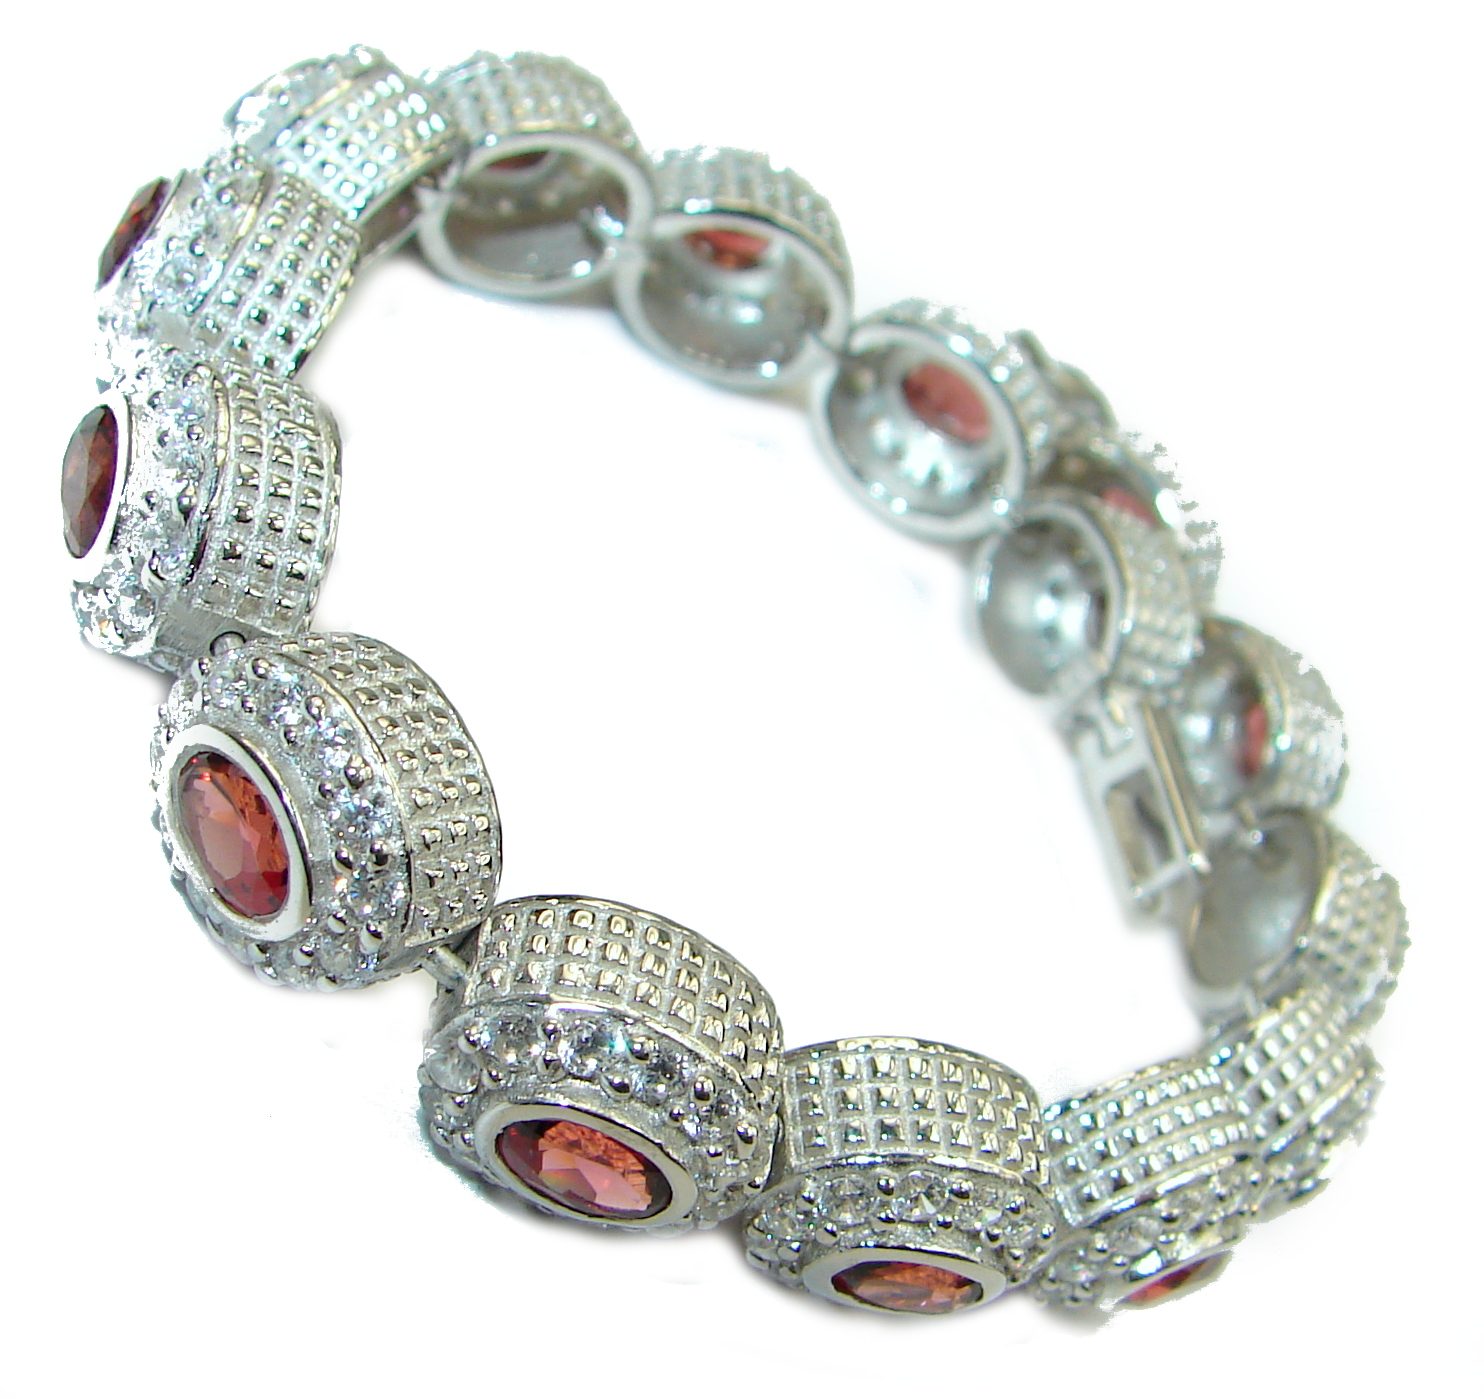 One of the kind Secret Beauty Garnet .925 Sterling Silver handcrafted Bracelet